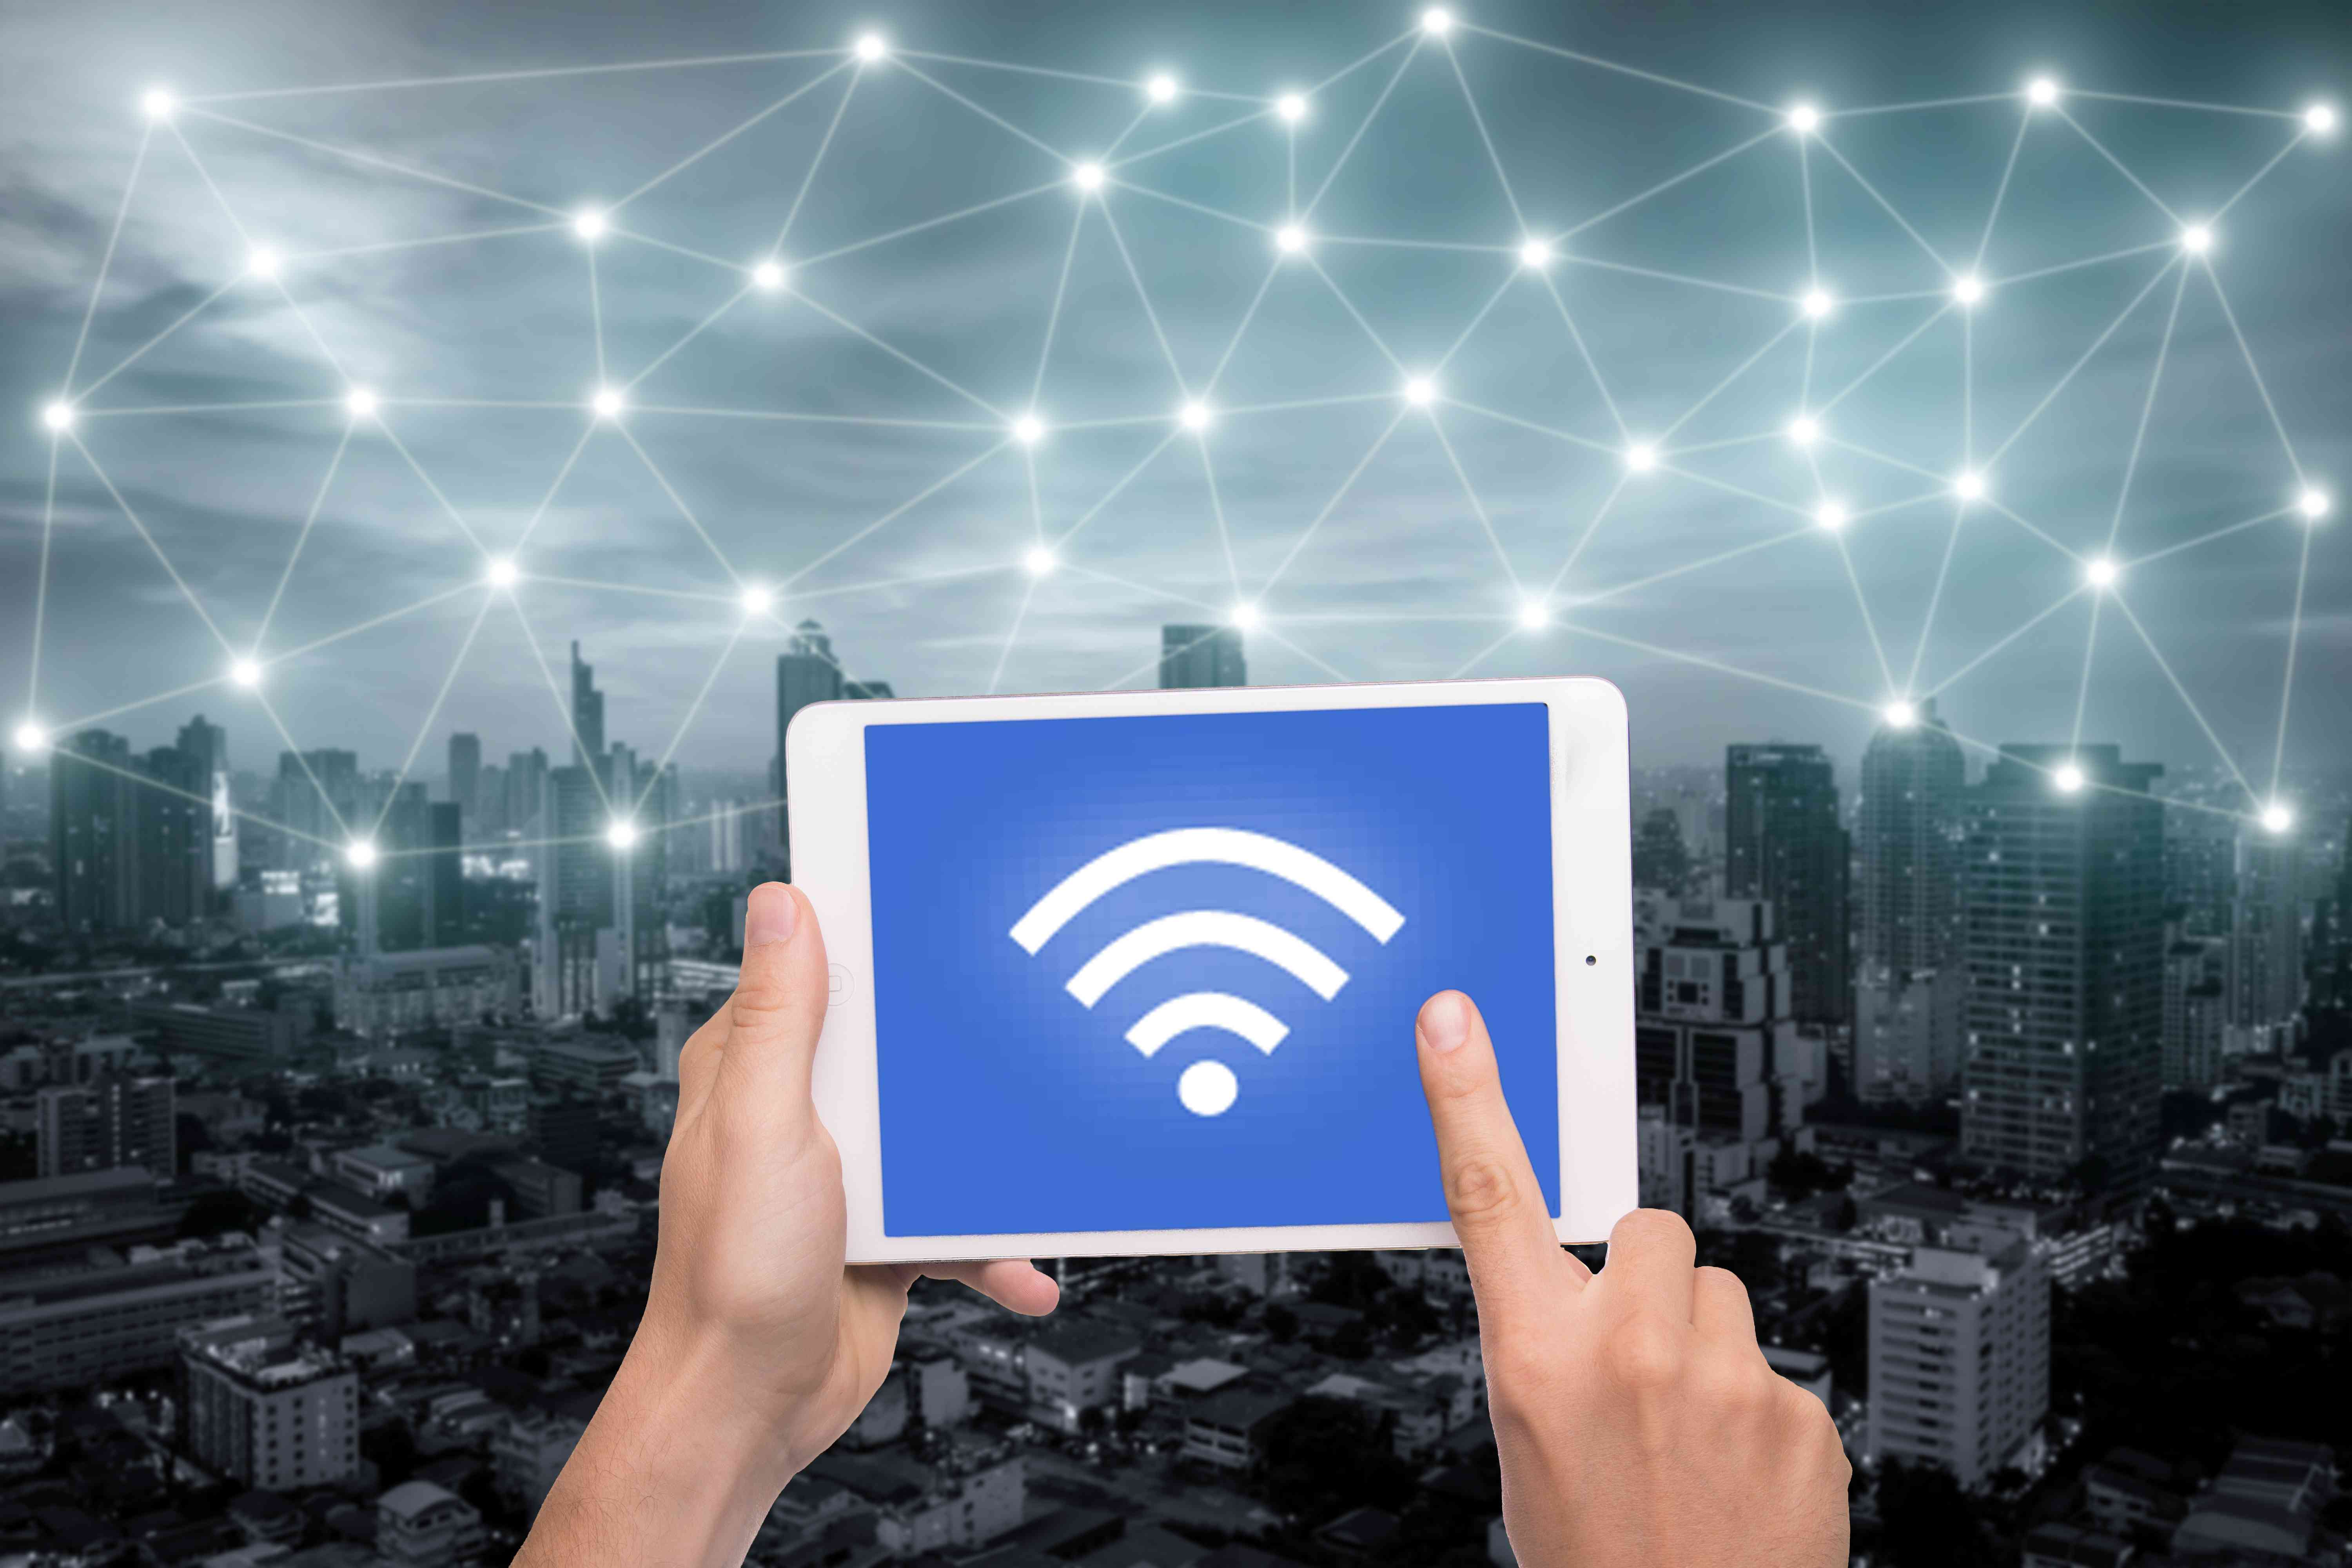 Hand holding tablet with wifi icon on city and network connection concept. Bangkok smart city and wireless communication network, abstract image visual, internet of things.